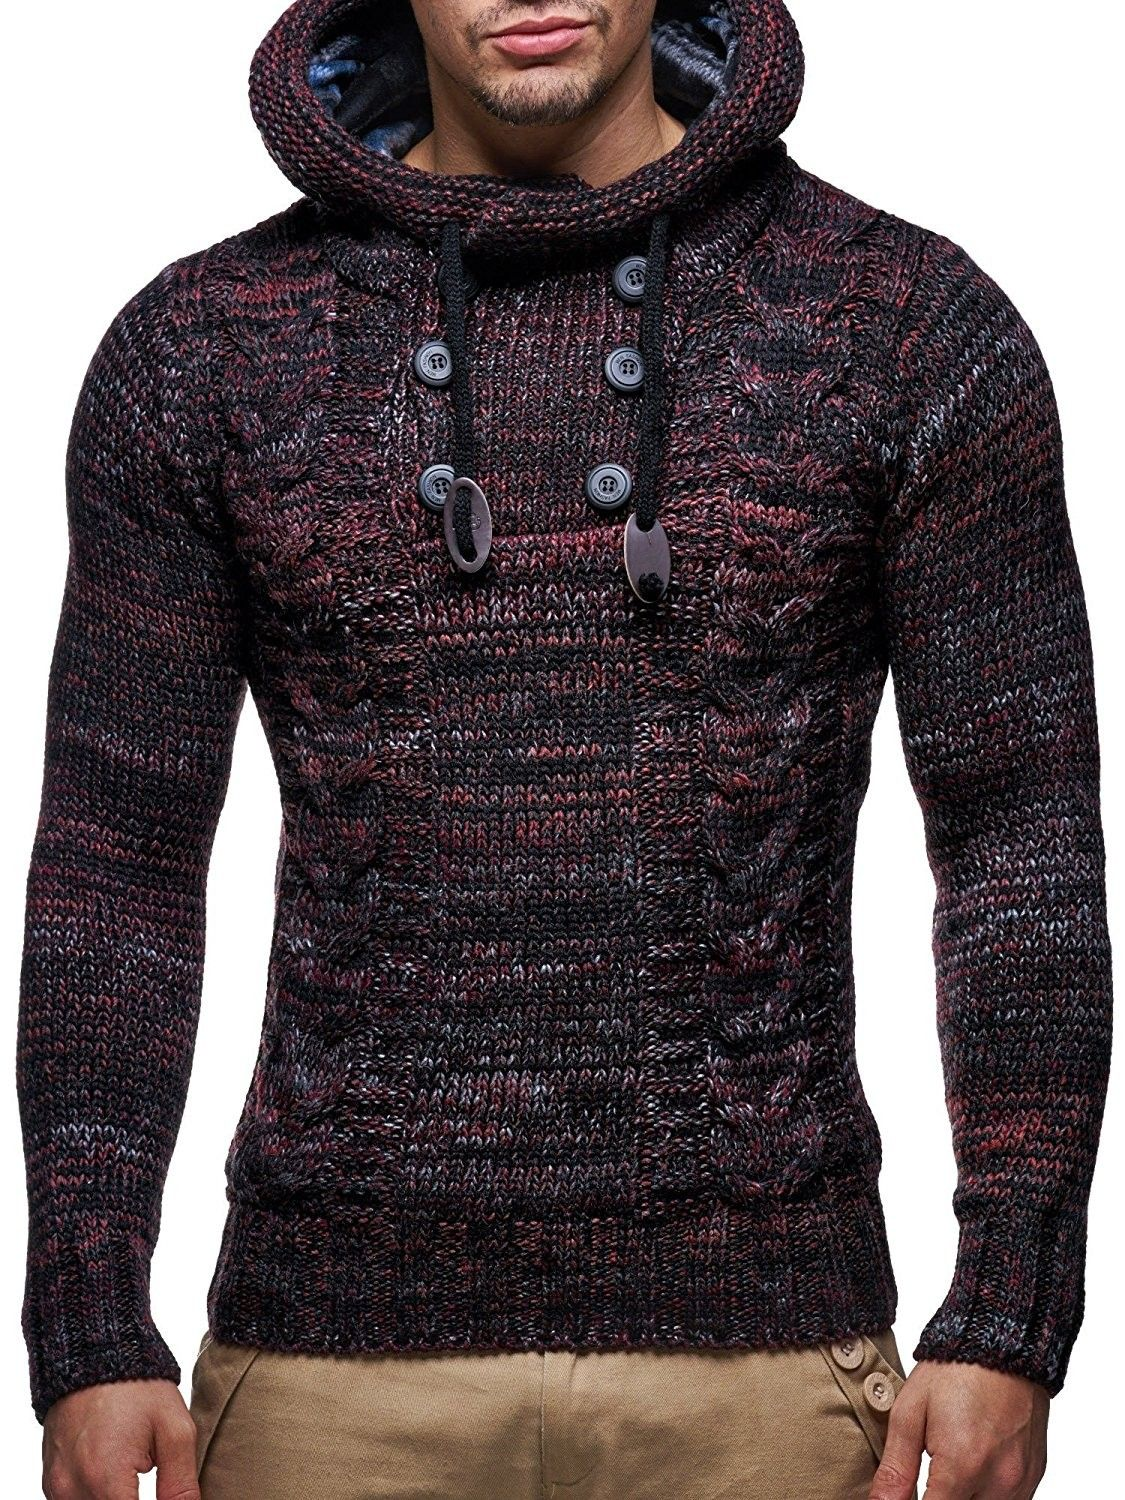 70c7983567b LN20227 Men s Knitted Pullover - Red - C611RETVH7H in 2019